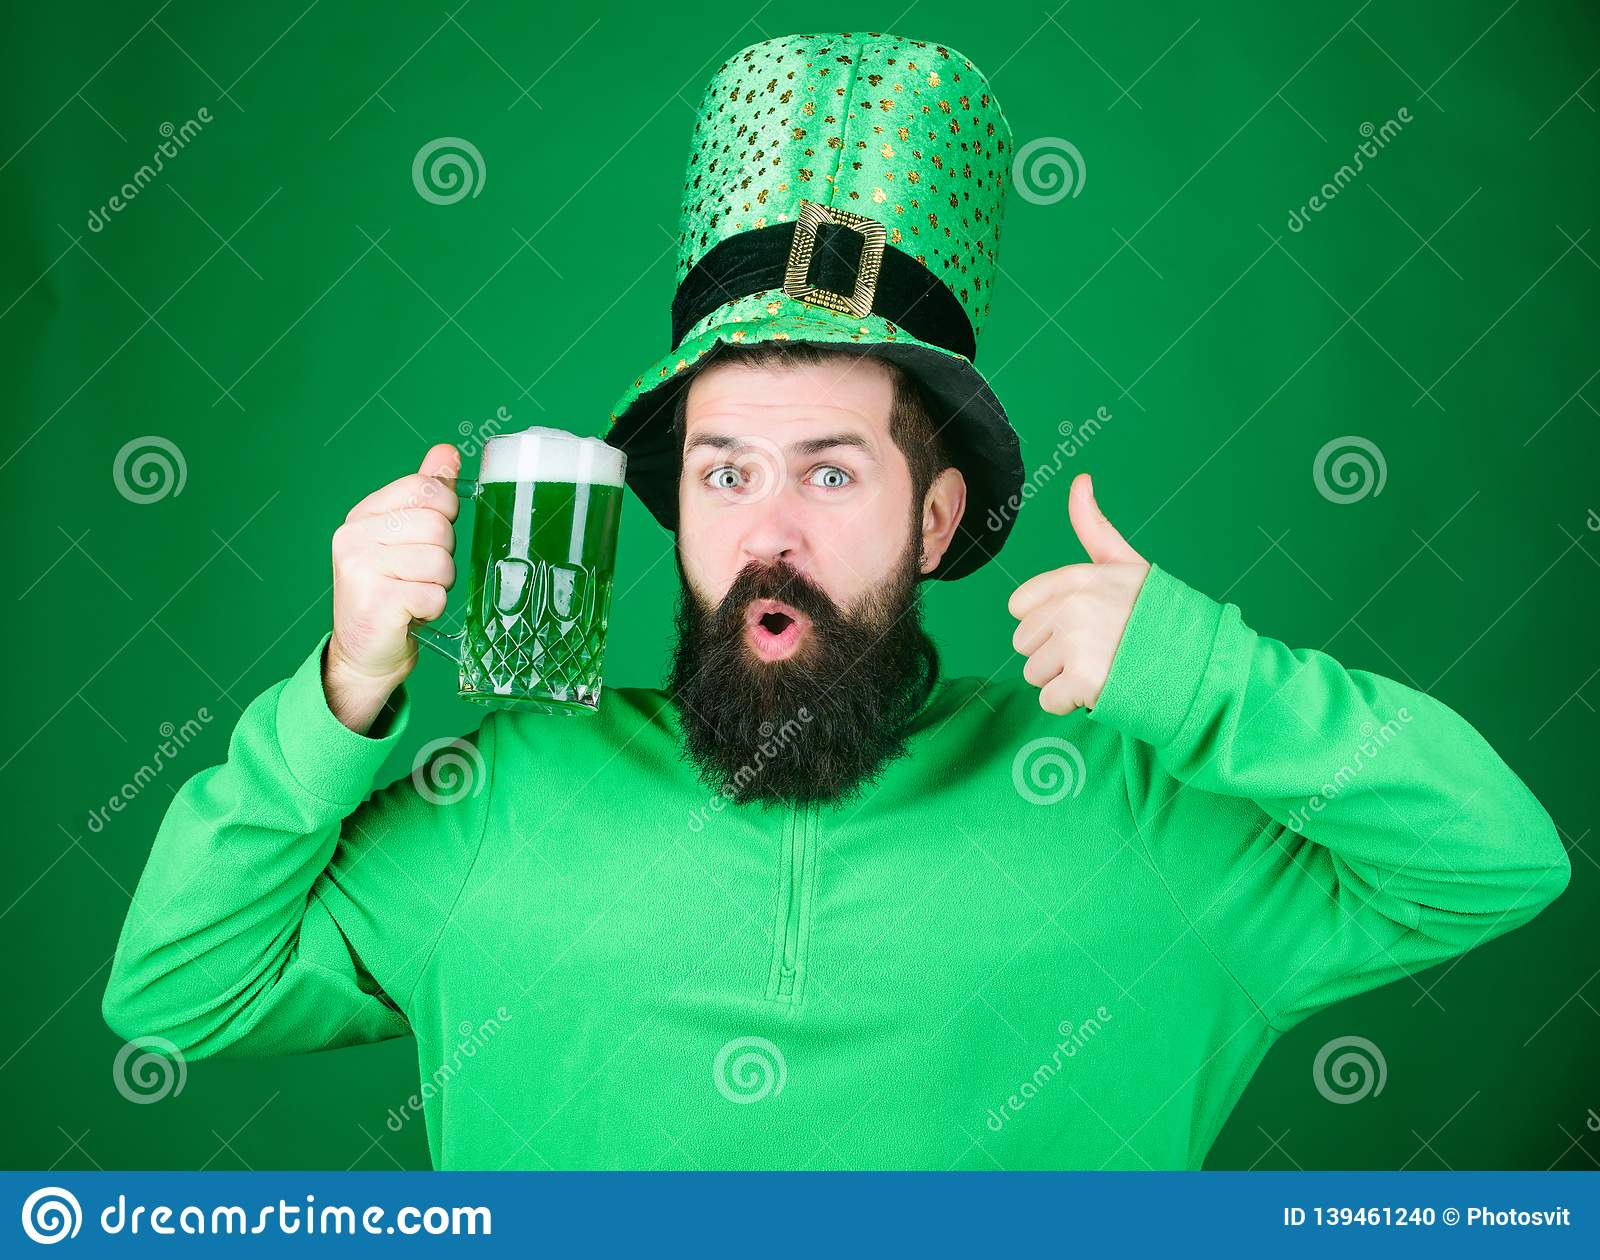 94745b438e Irish Man With Beard Showing Thumbs Up To Green Beer. Hipster In ...